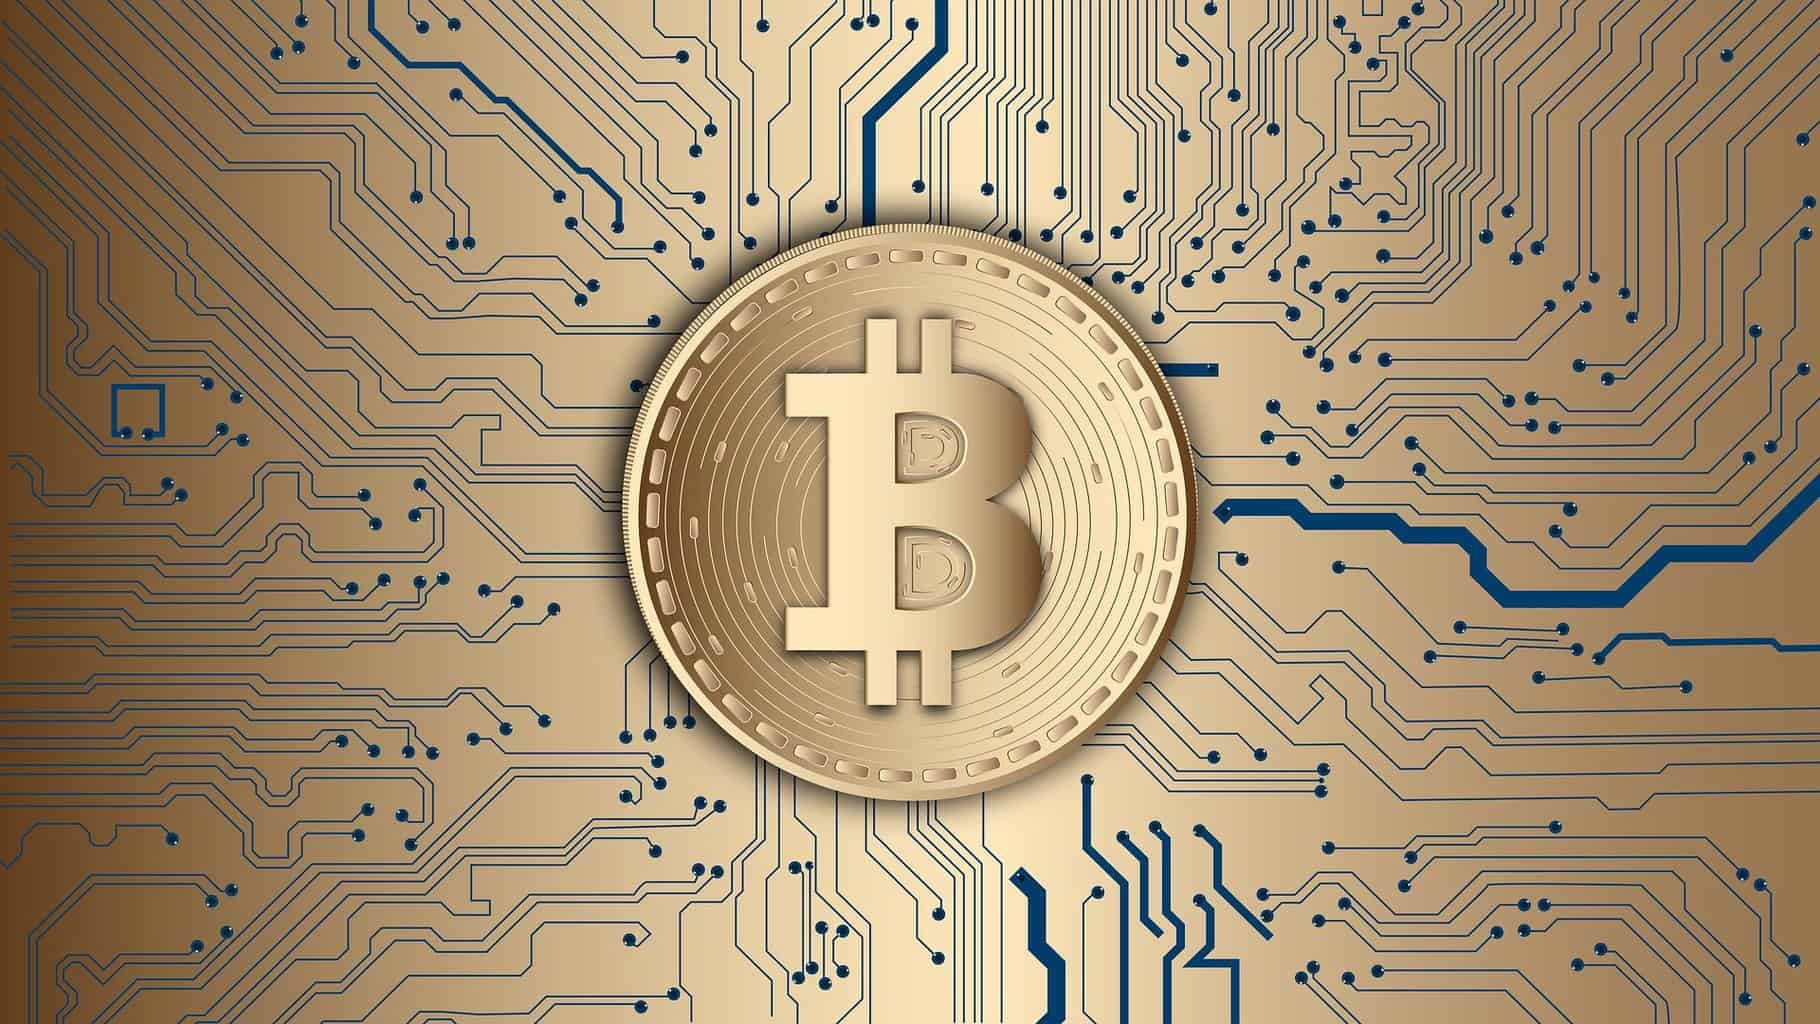 <bold>Bitcoin</bold> is a bubble, a way to speculate and not the future of money | Vivek Kaul